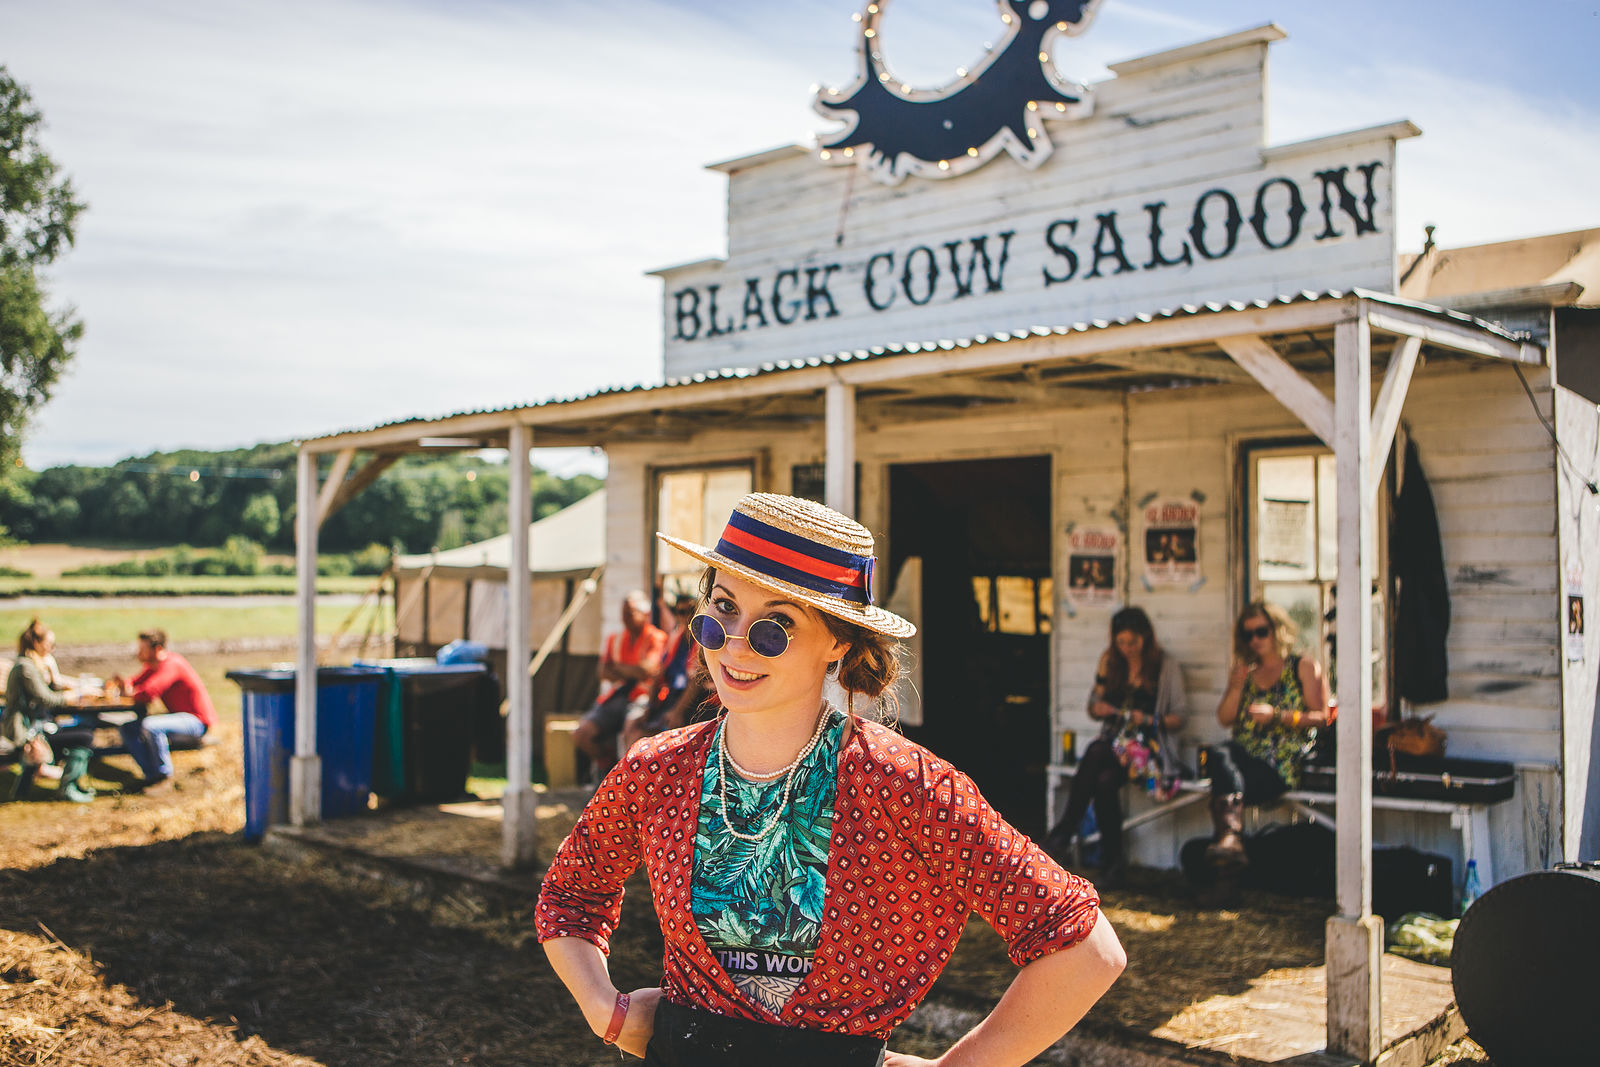 Black Cow Saloon